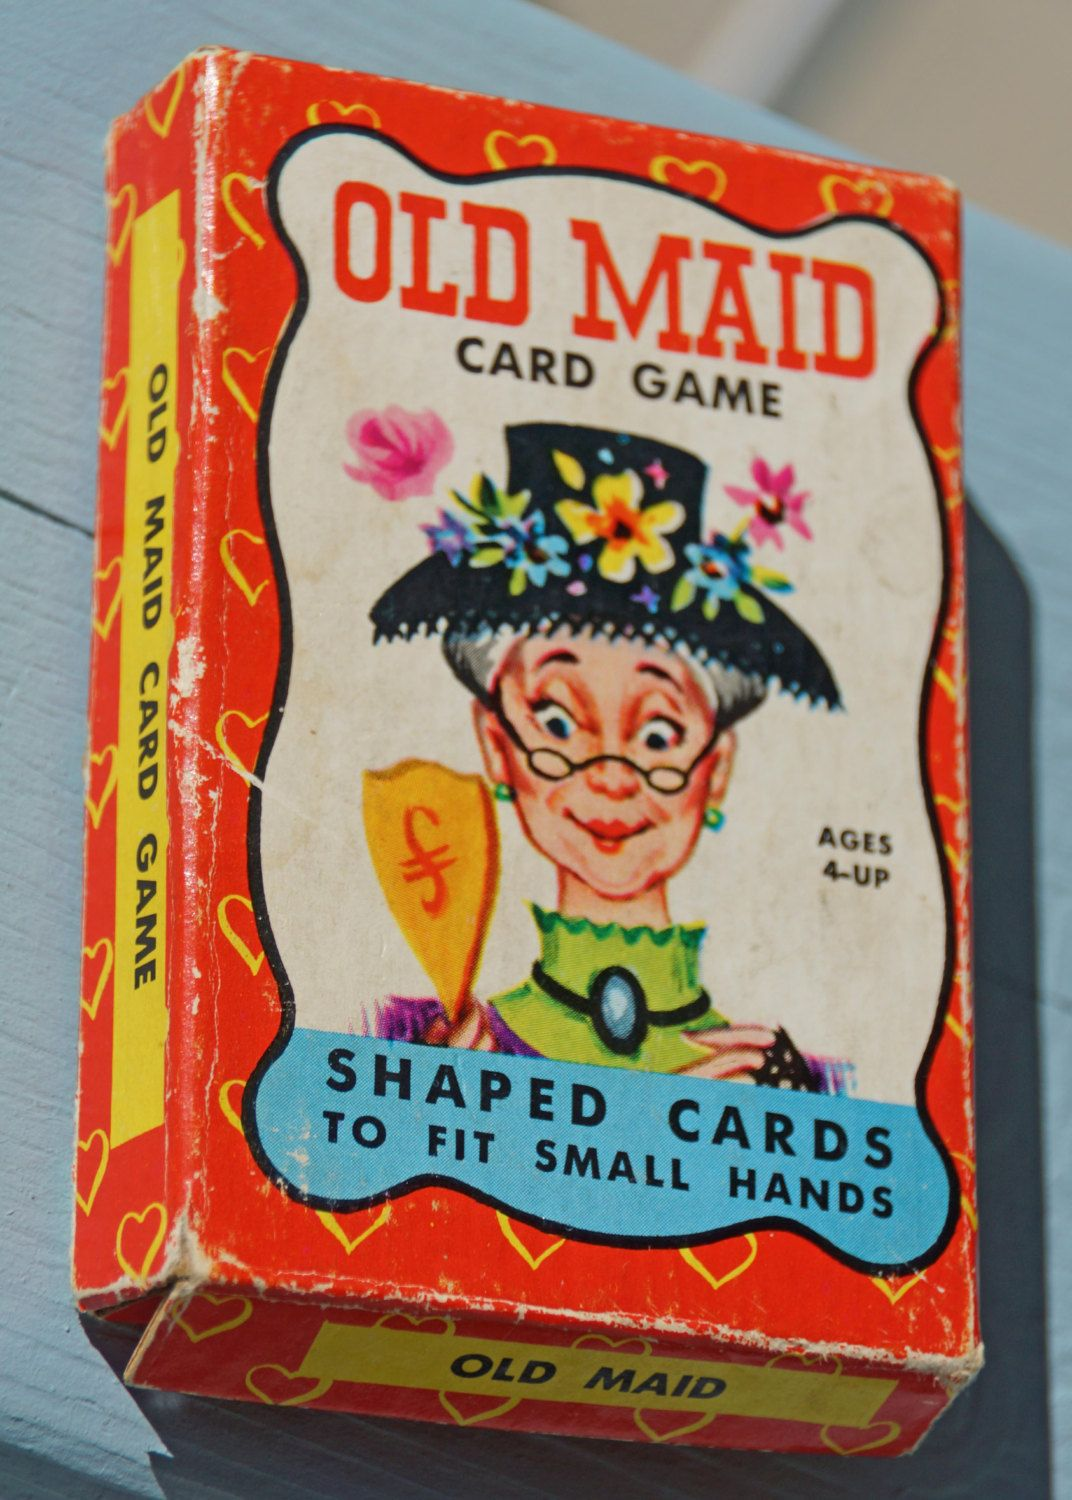 Who's Got the Old Maid Vintage Card Game | Etsy | Childhood memories 70s,  Childhood toys, My childhood memories